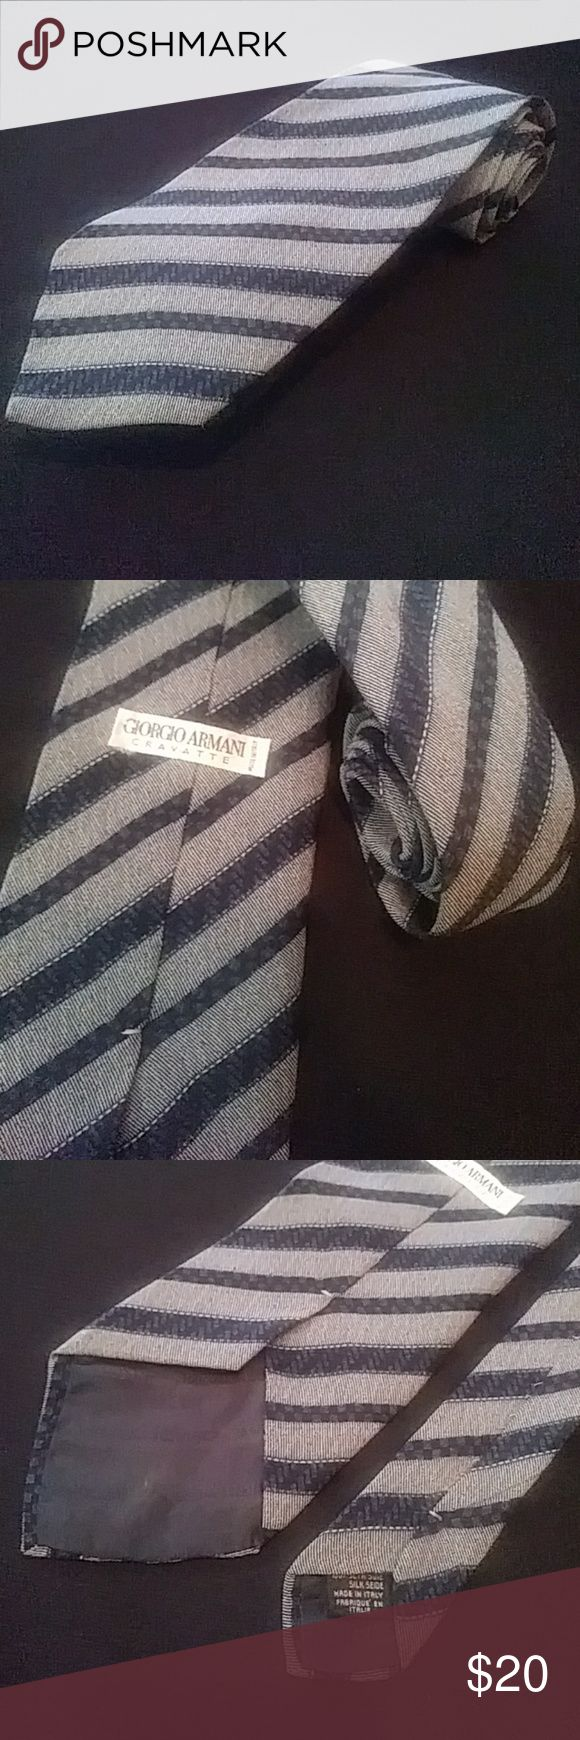 Giorgio Armani Tie Stripe Italian Cravatte Silk UP FOR SALE IS A 100% AUTHENTIC GIORGIO ARMANI TIE. IT IS 100% SILK AND IS IN EXCELLENT CONDITION. MADE IN TALY. MEASUREMENTS: 3-7/8 WIDE, 58-1/2 LONG. PLEASE MESSAGE ME WITH ANY QUESTIONS. MAKE ME A REASONABLE OFFER!!!  Get A 25% Discount When You Bundle Up 5 Items or More. Giorgio Armani Accessories Ties